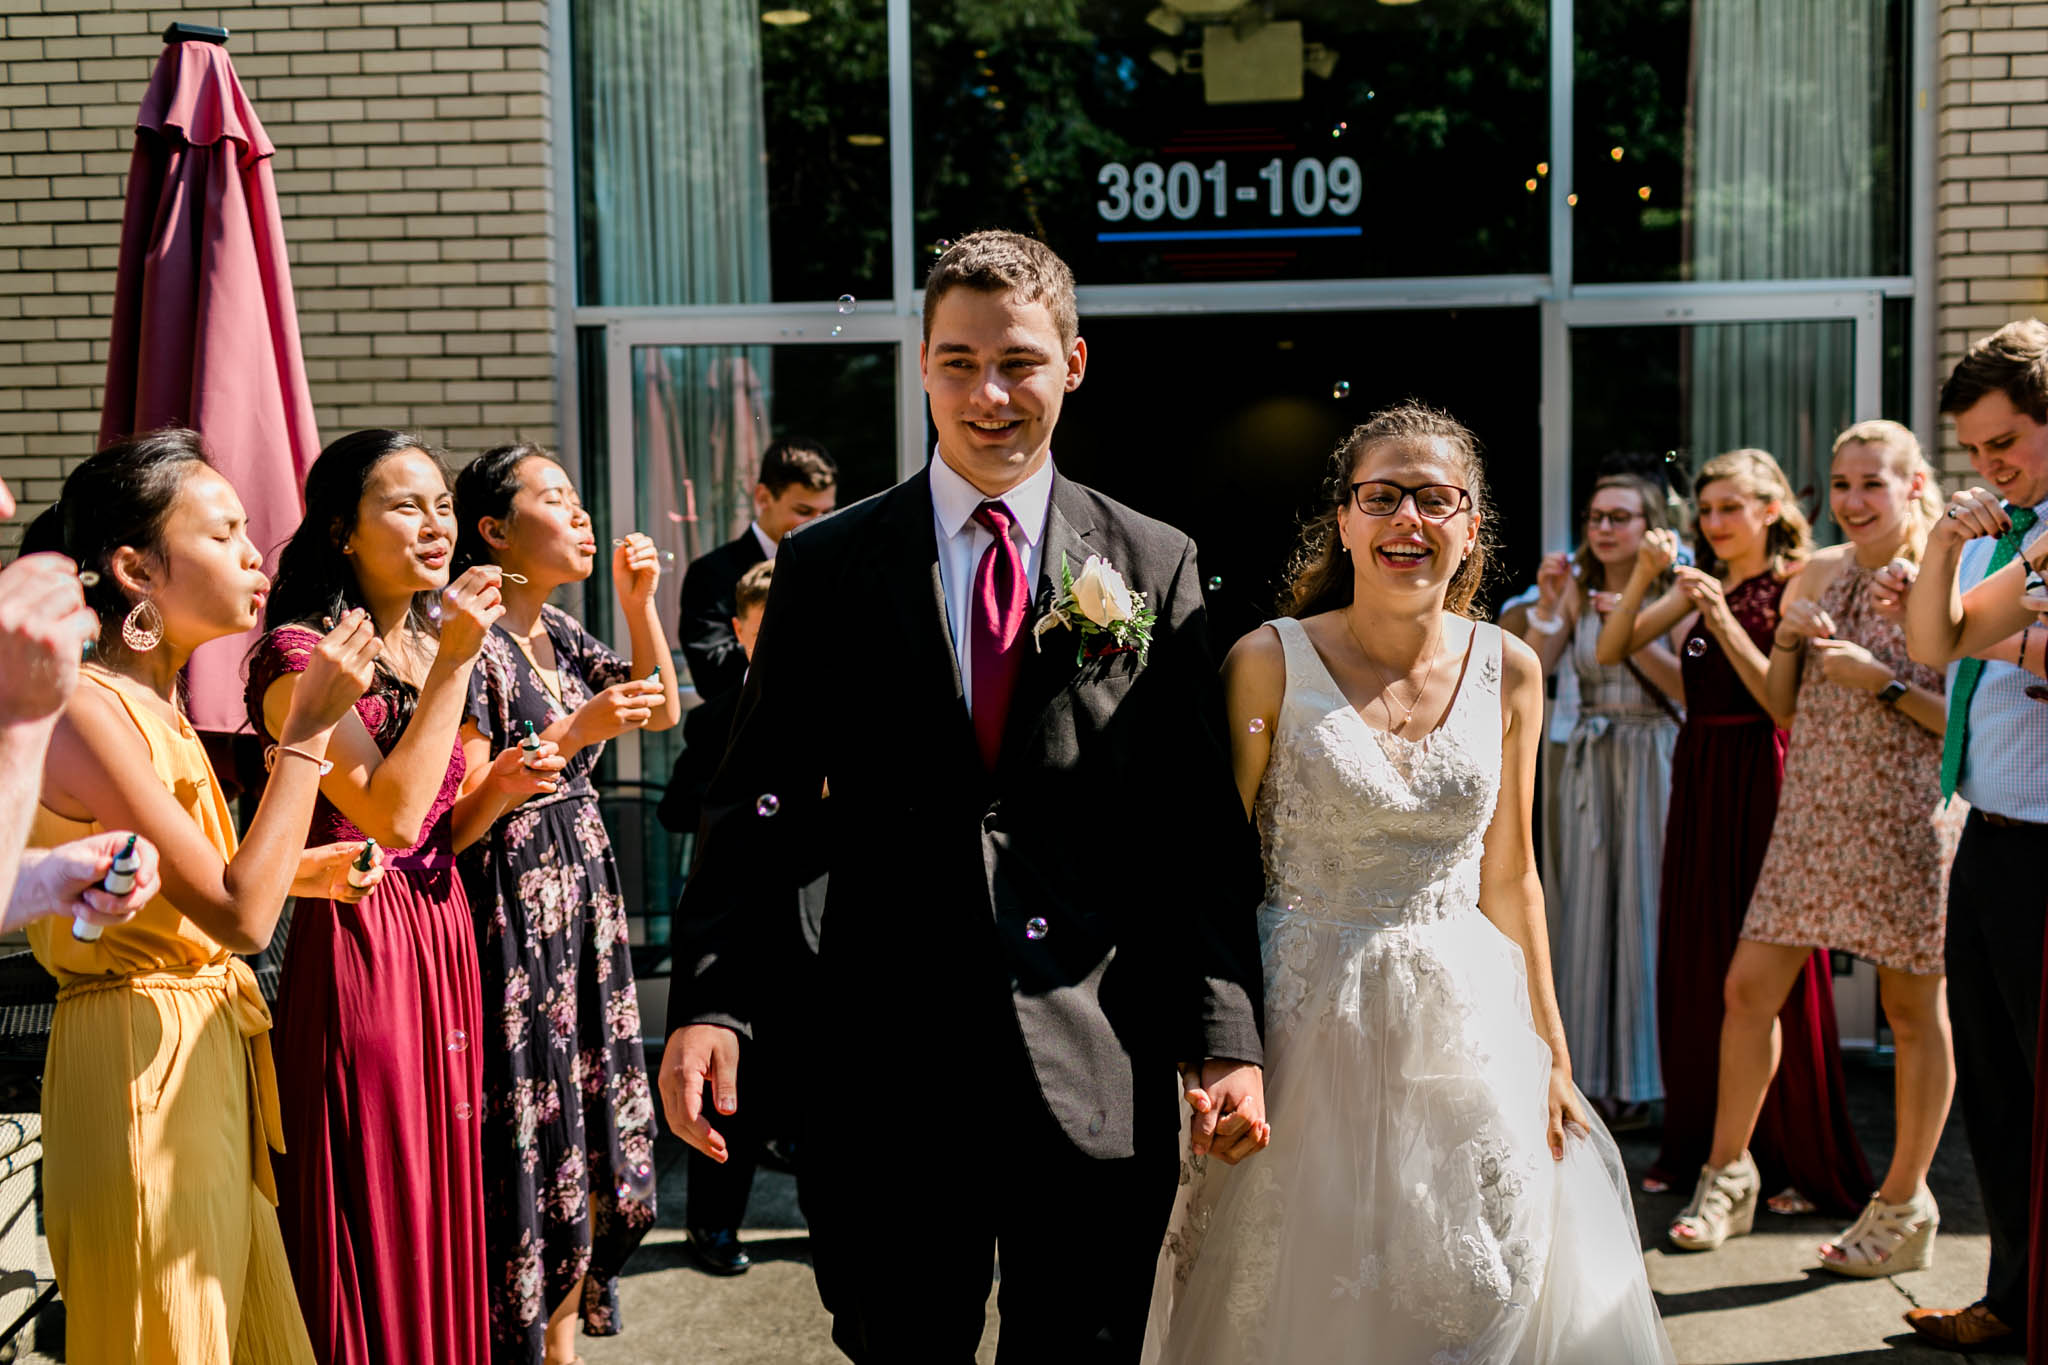 Bride and groom sendoff | Royal Banquet Conference Center | Raleigh Wedding Photographer | By G. Lin Photography